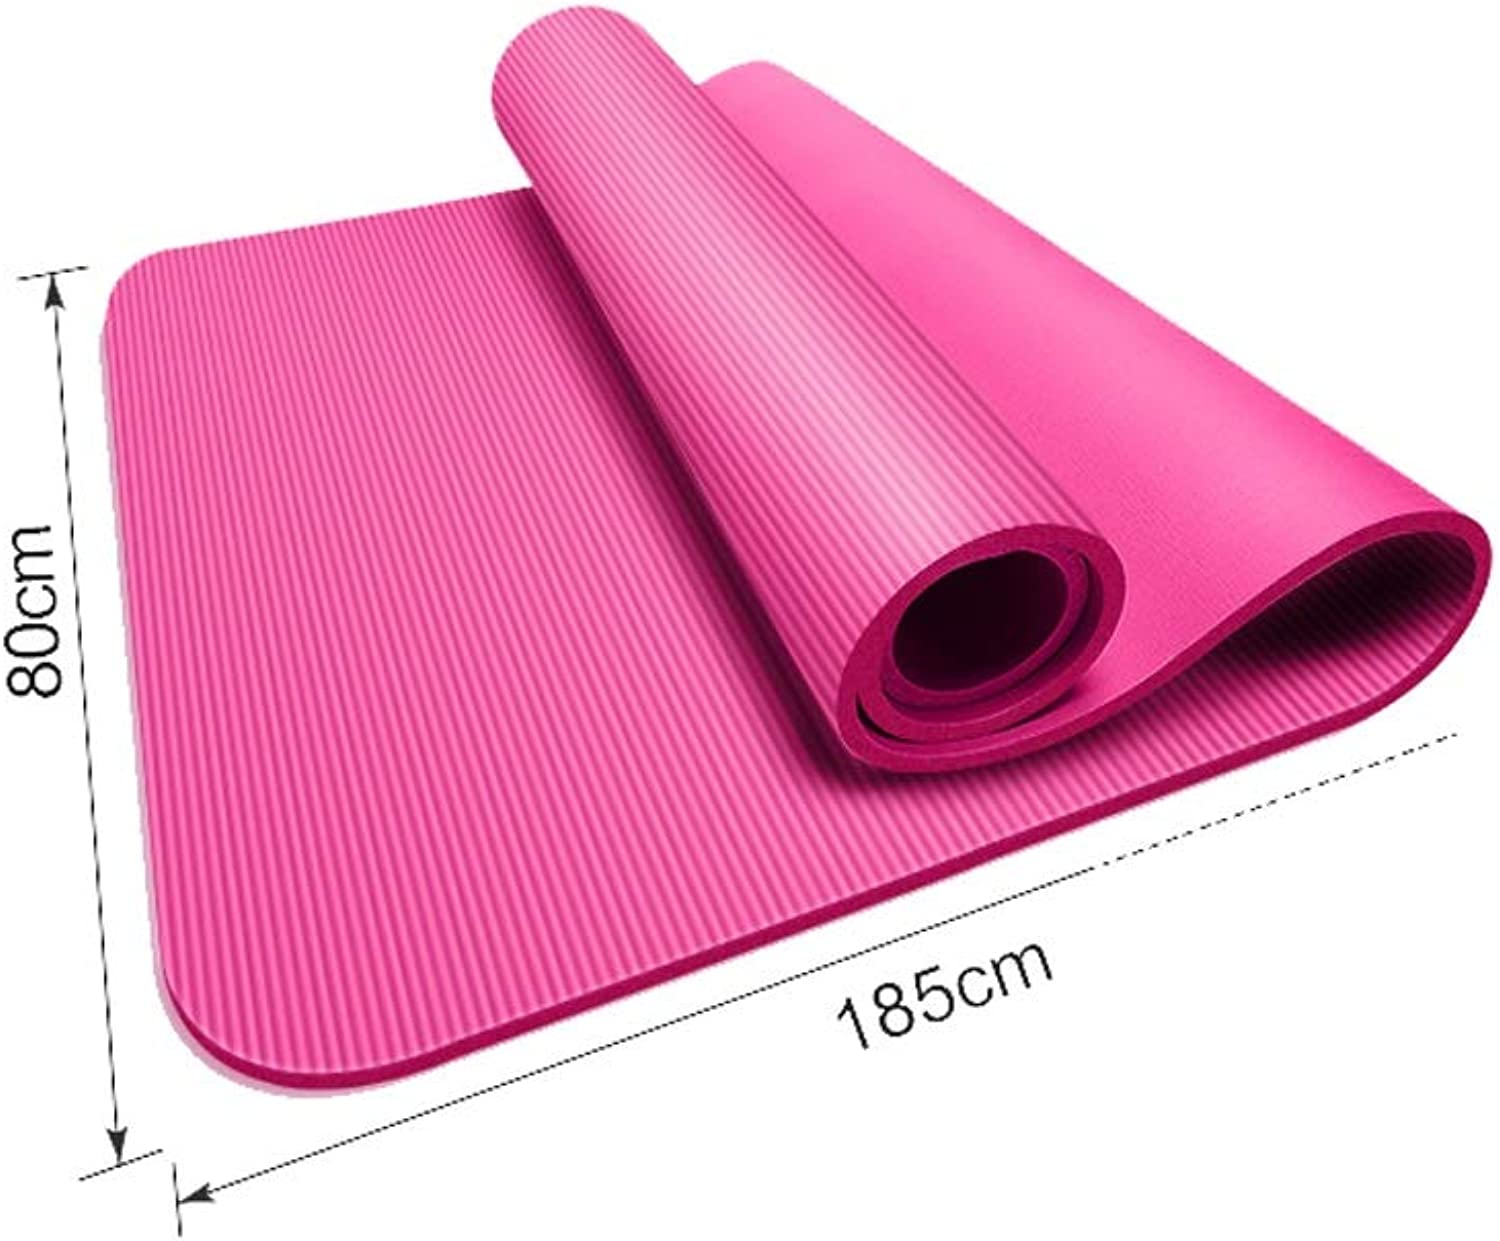 Widened Thickening Yoga mat 185cm×80cm with Portable Backpack Tied with NonSlip Fitness mat Outdoor Sports mat mat XUMINGYJD